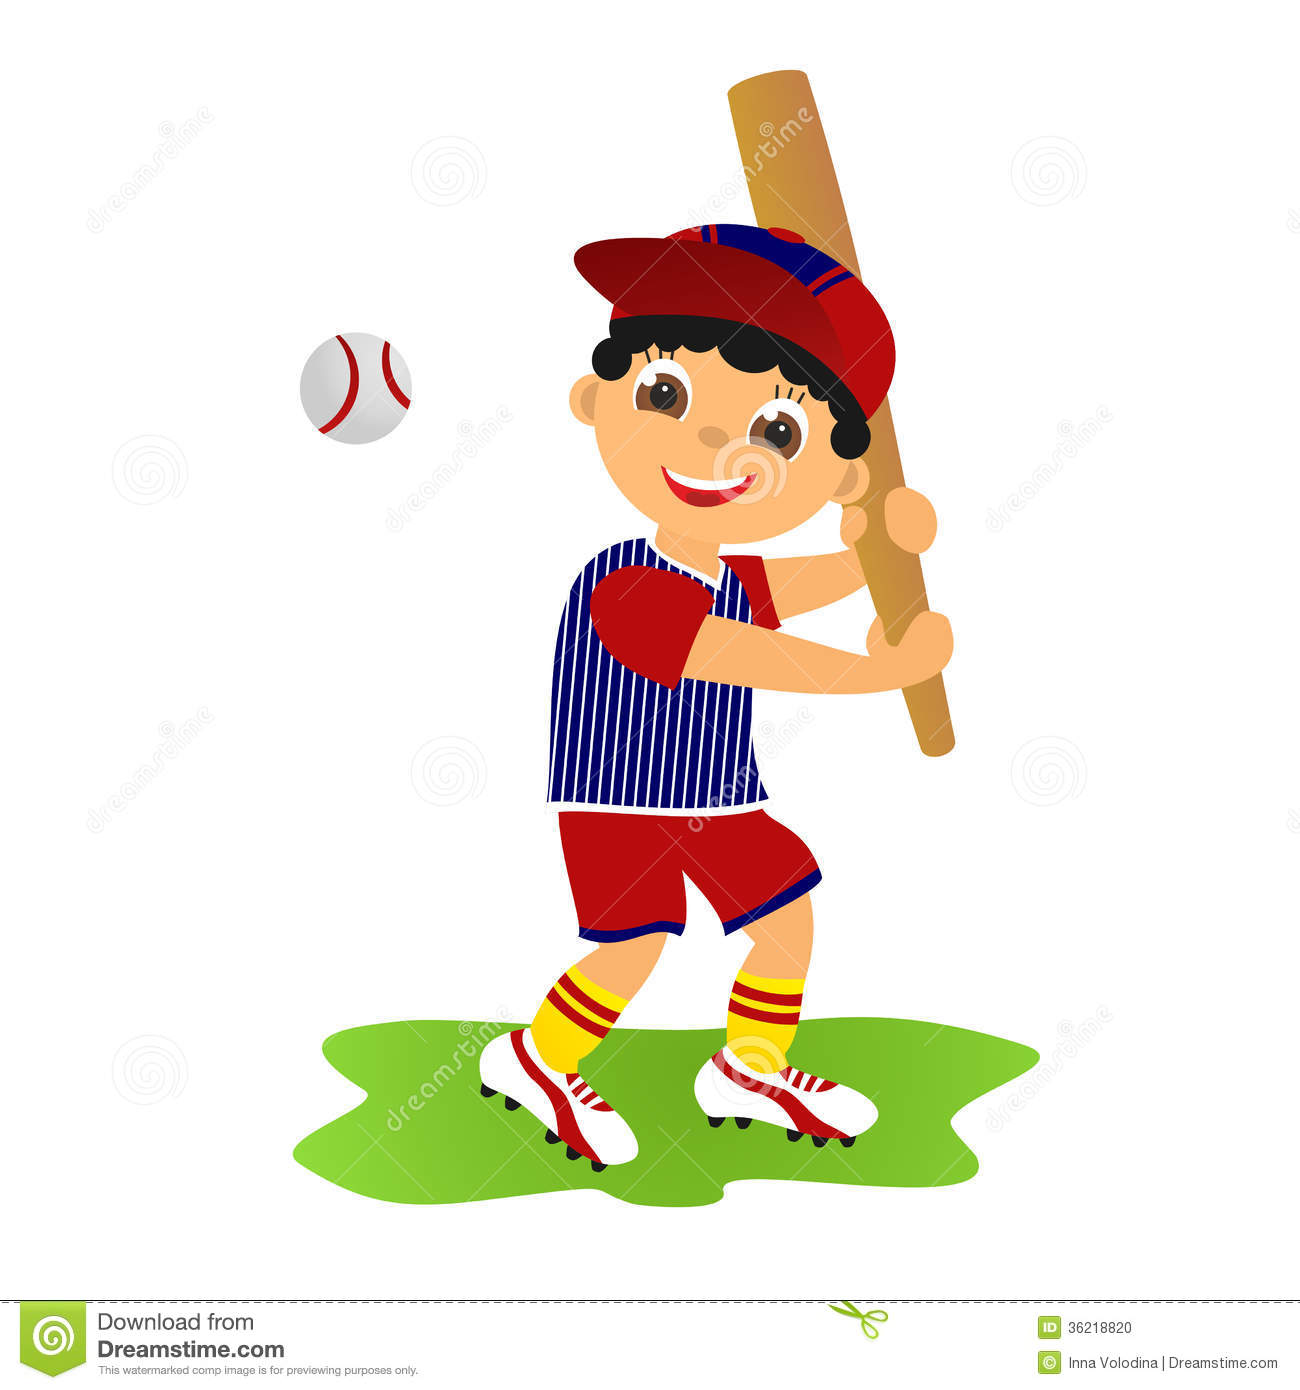 Baseball Kids Clipart Group with 74+ items.